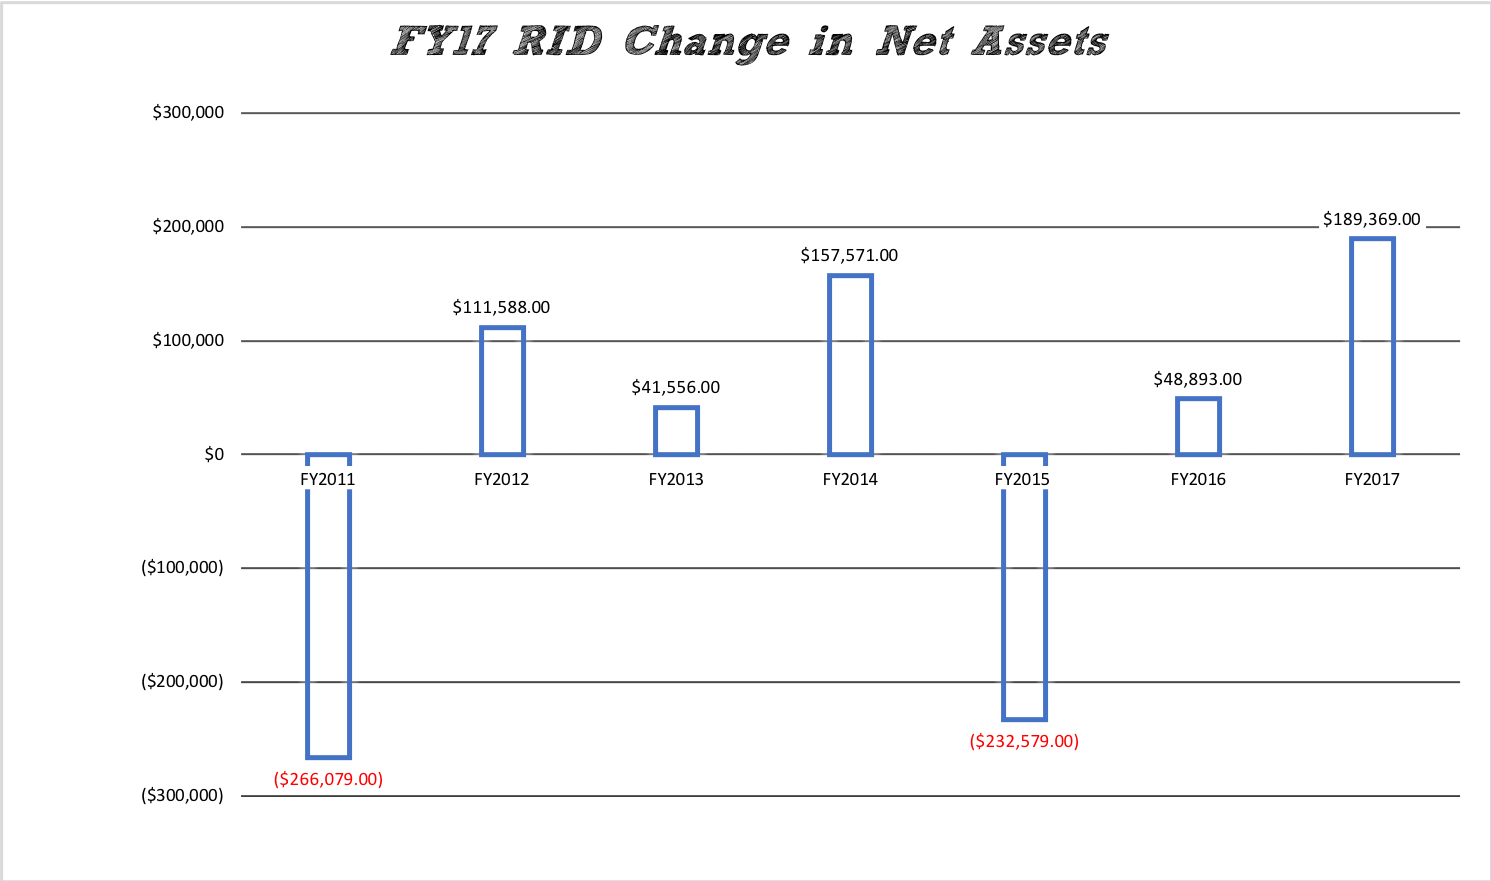 FY17 RID Change in Assets